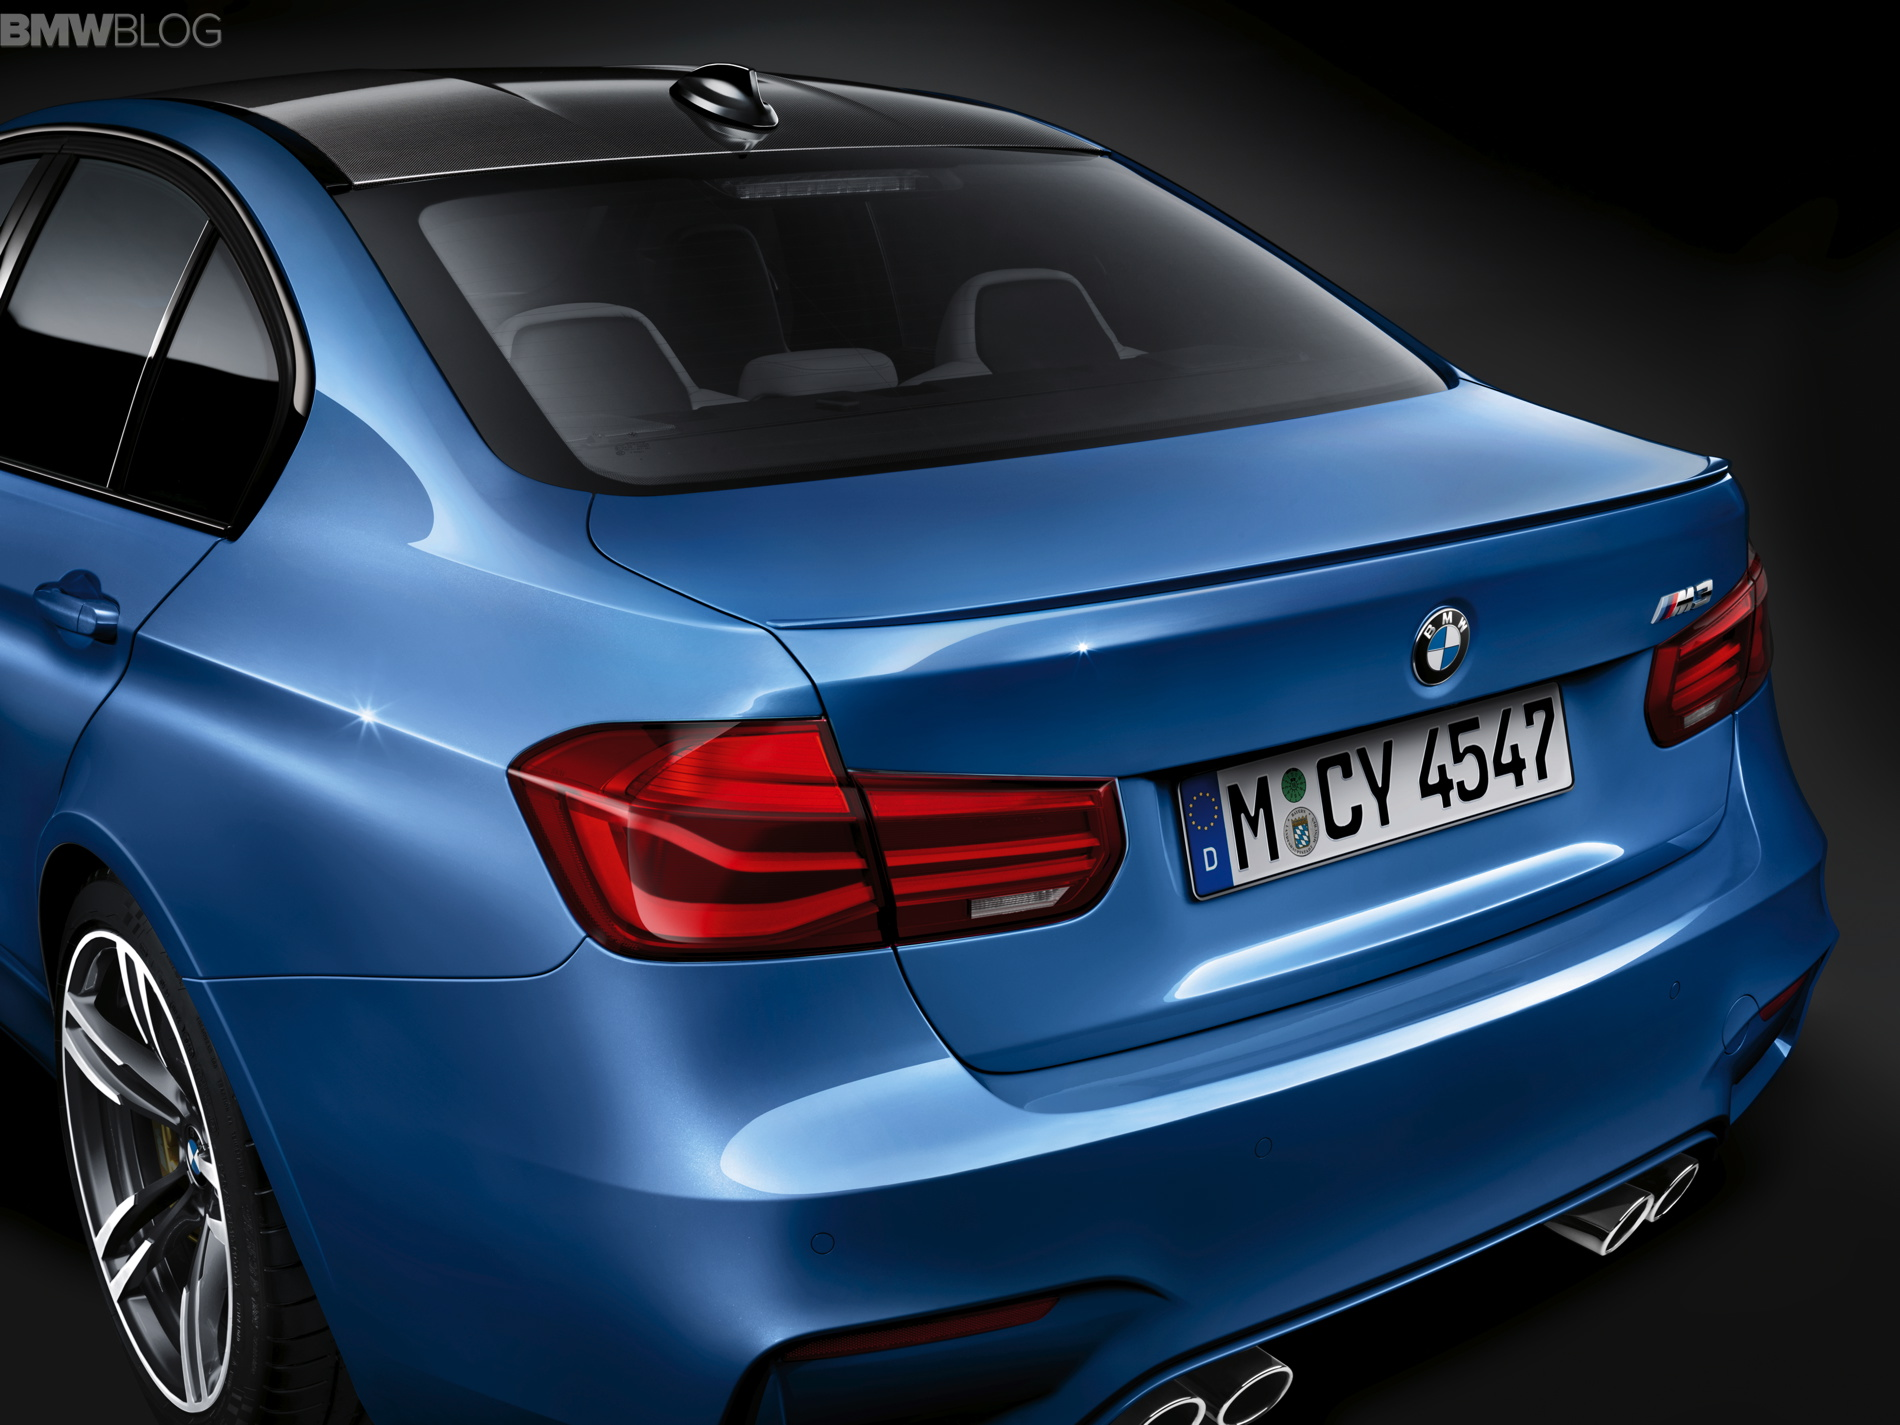 2016 bmw m3 facelift images 03